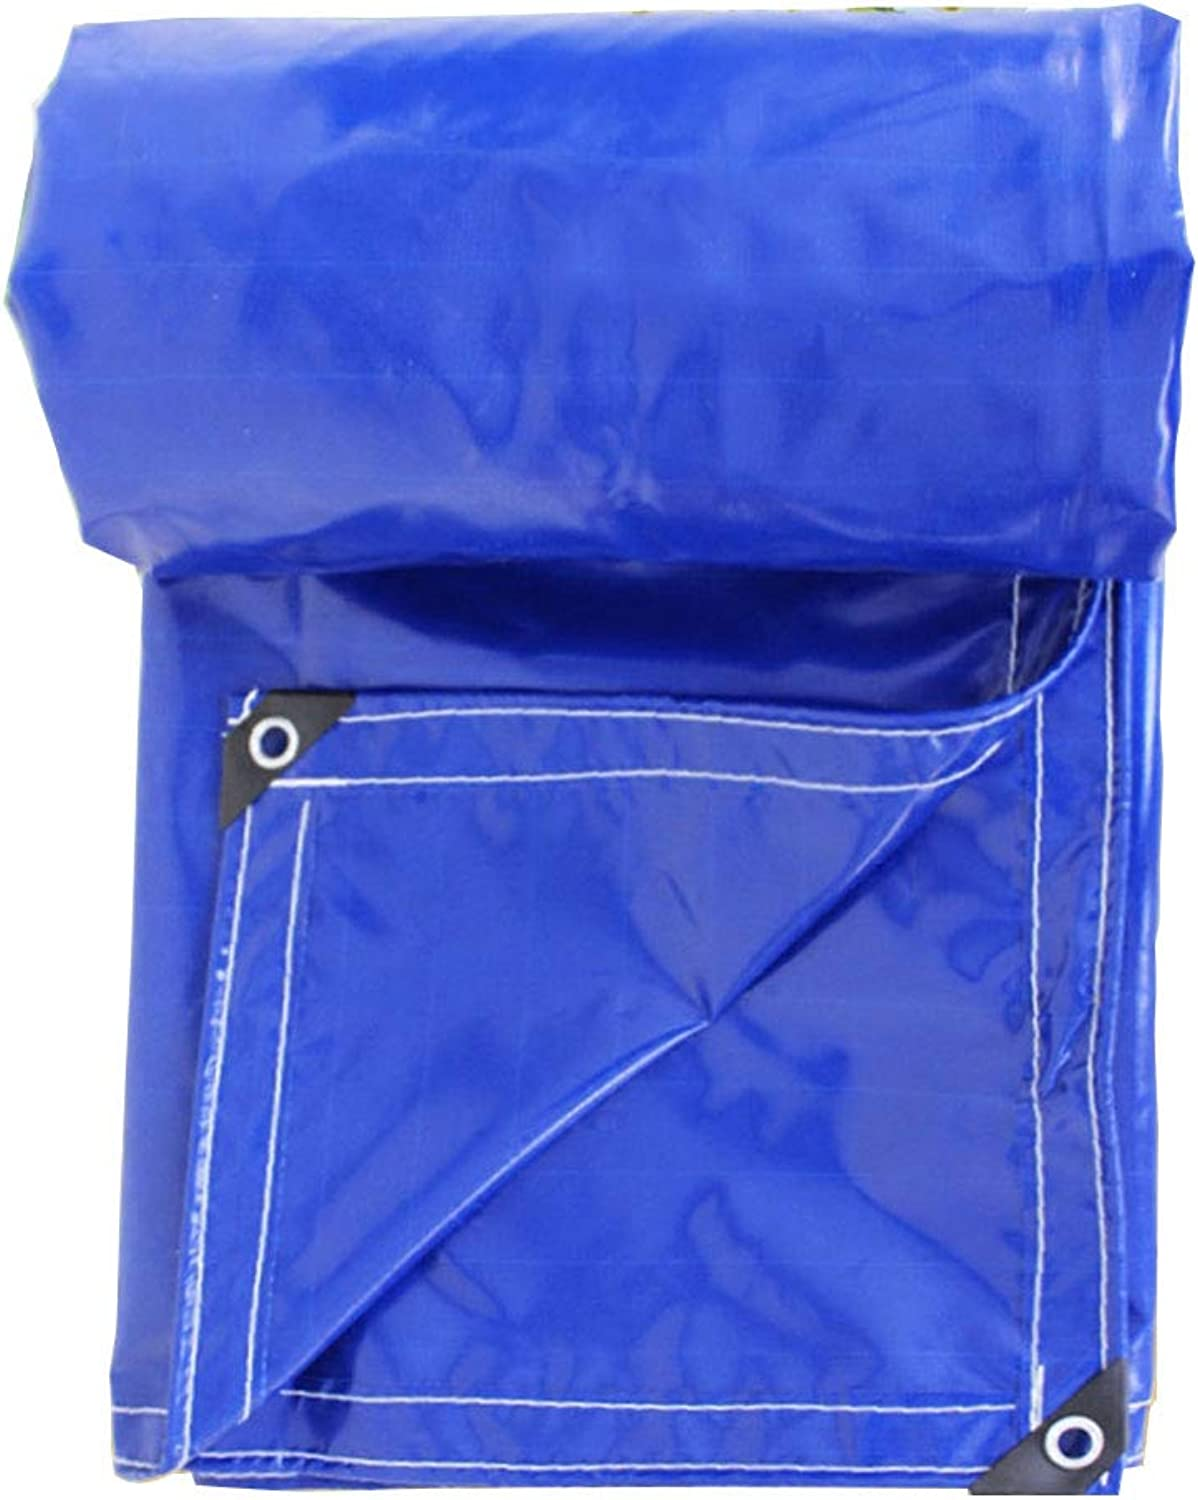 LIANGLIANG Tarpaulin Sheet Heavy Waterproof Outdoor Shade Tear Resistance Covering The Ship Metal Buttonhole Polyethylene, 13 Sizes